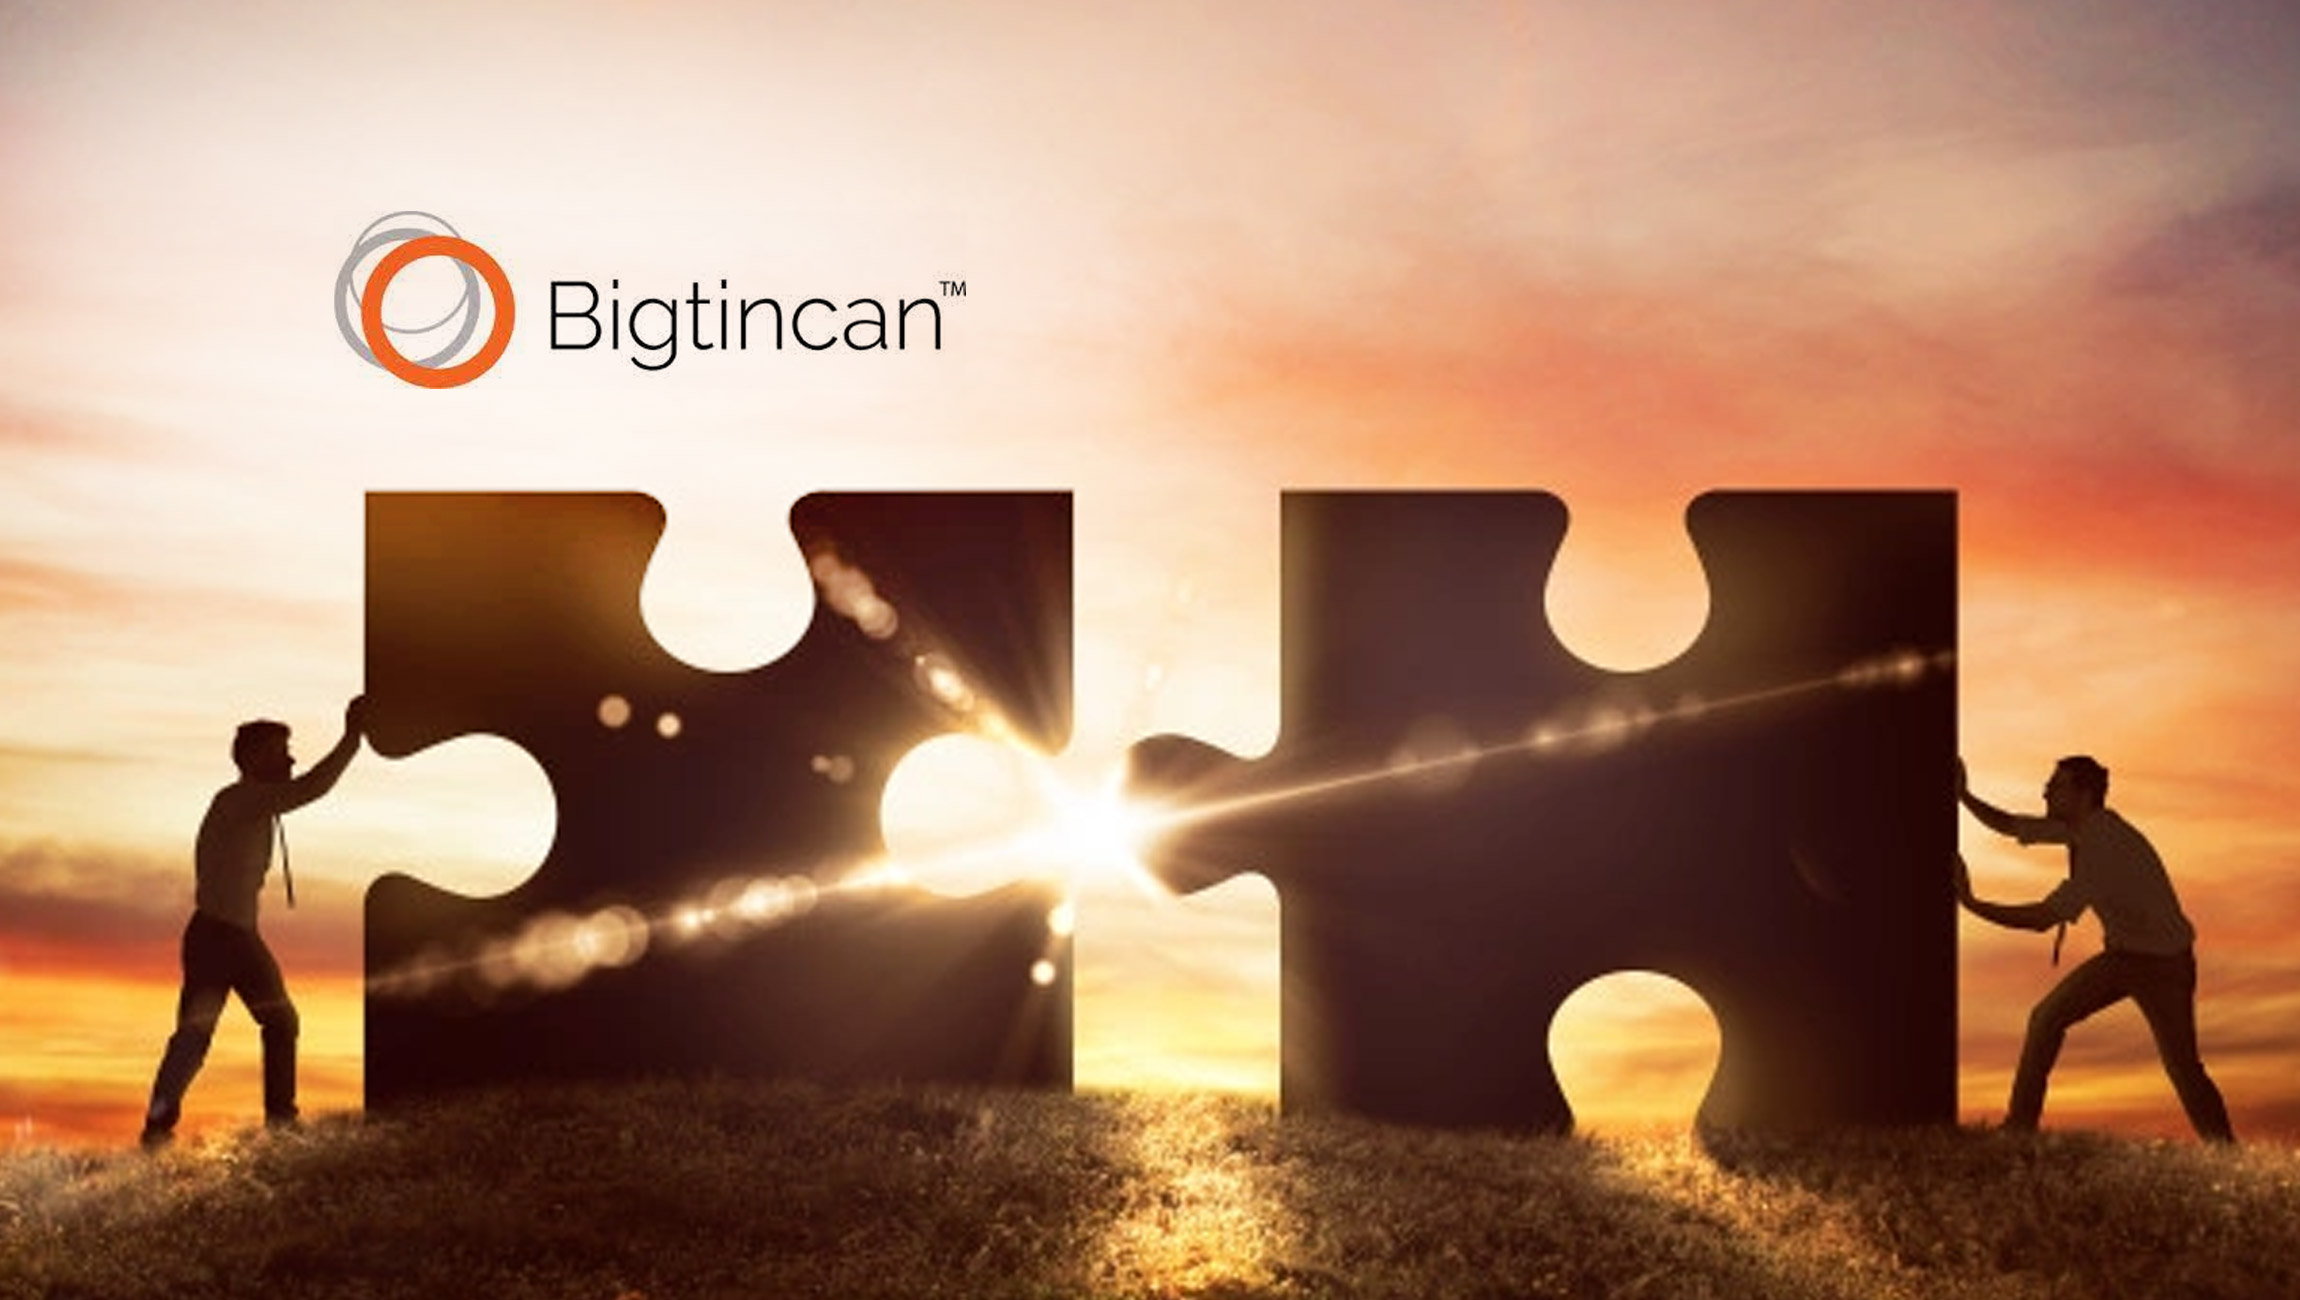 Bigtincan Acquires Vidinoti to Enable Immersive Buying Experiences with Augmented Reality and Connected Objects